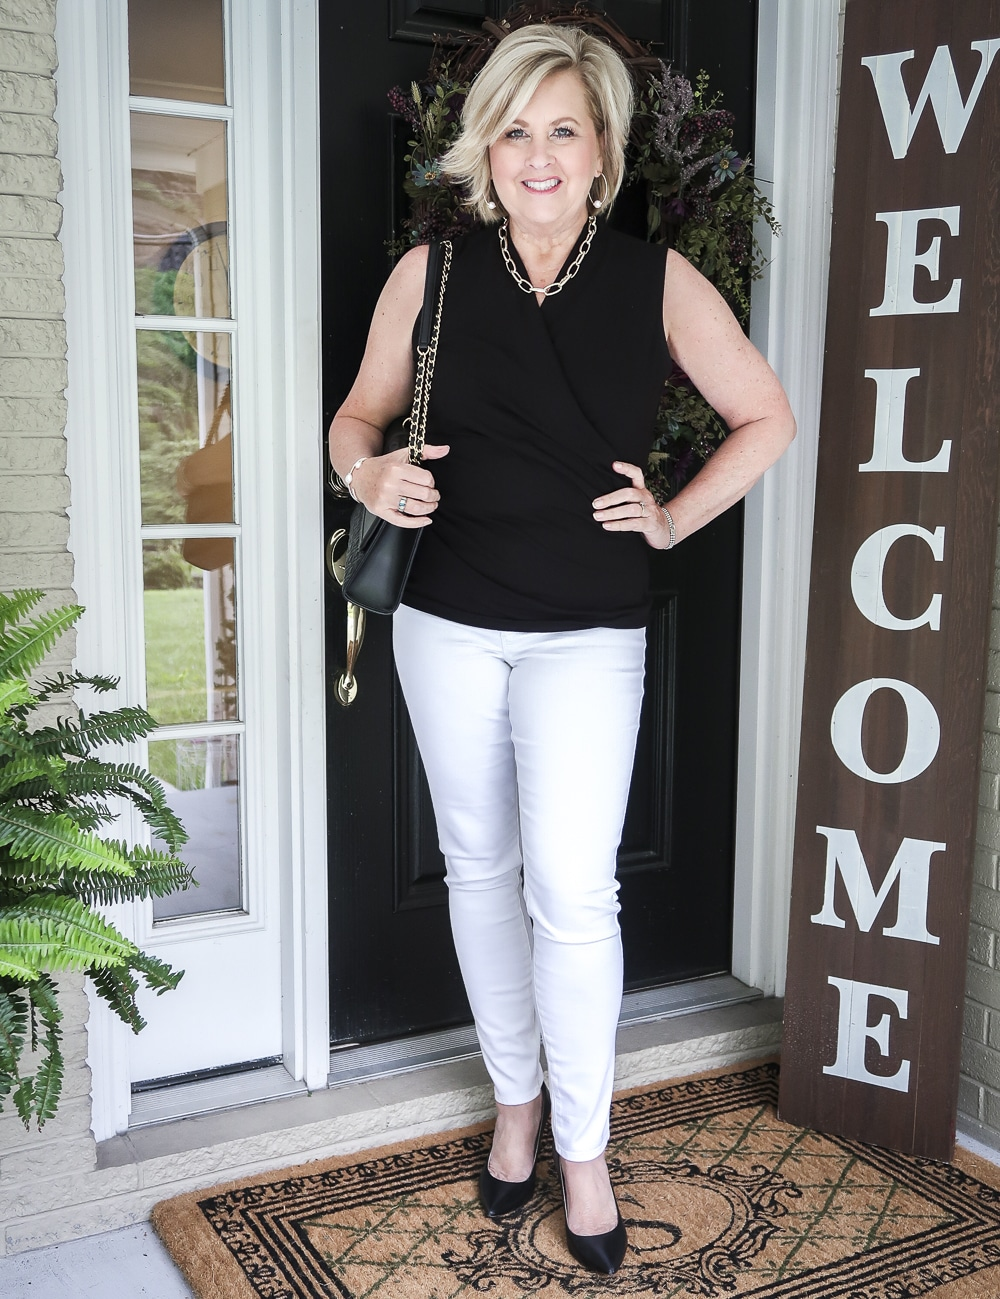 Fashion Blogger 50 Is Not old is wearing a black faux wrap top with white No Stain jeggings, classic black pumps and a black shoulder bag